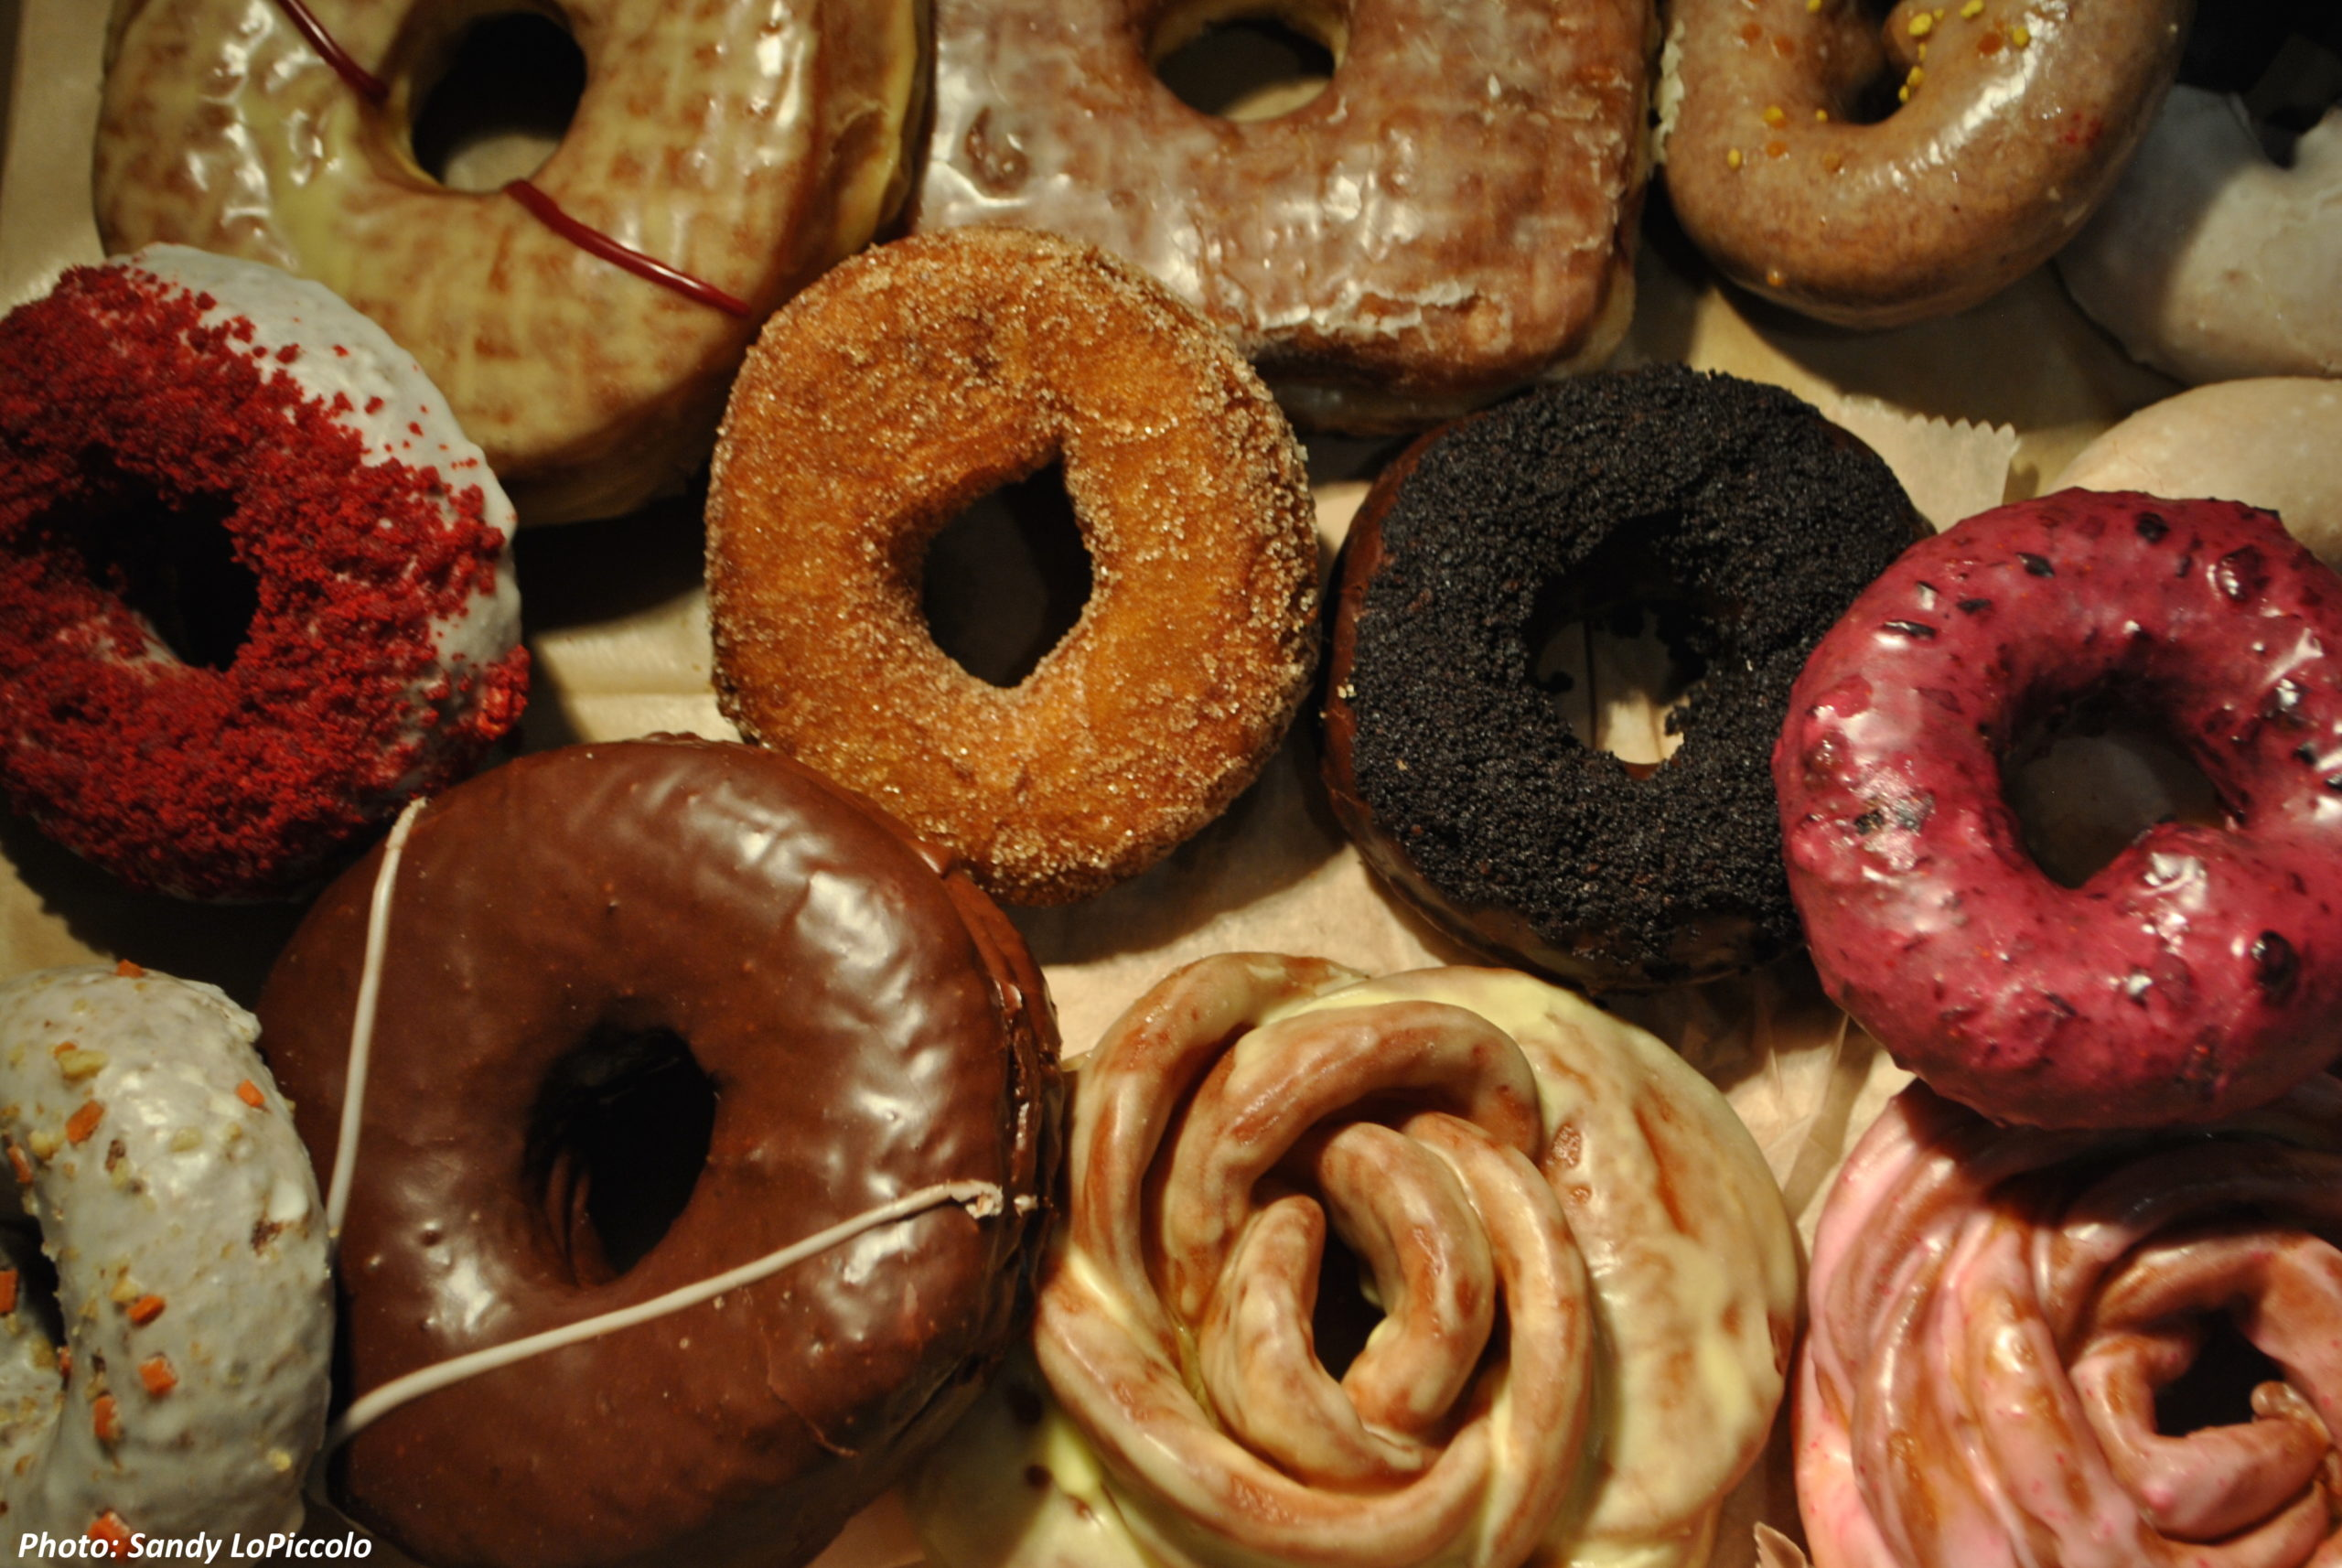 A Day for Doughnuts